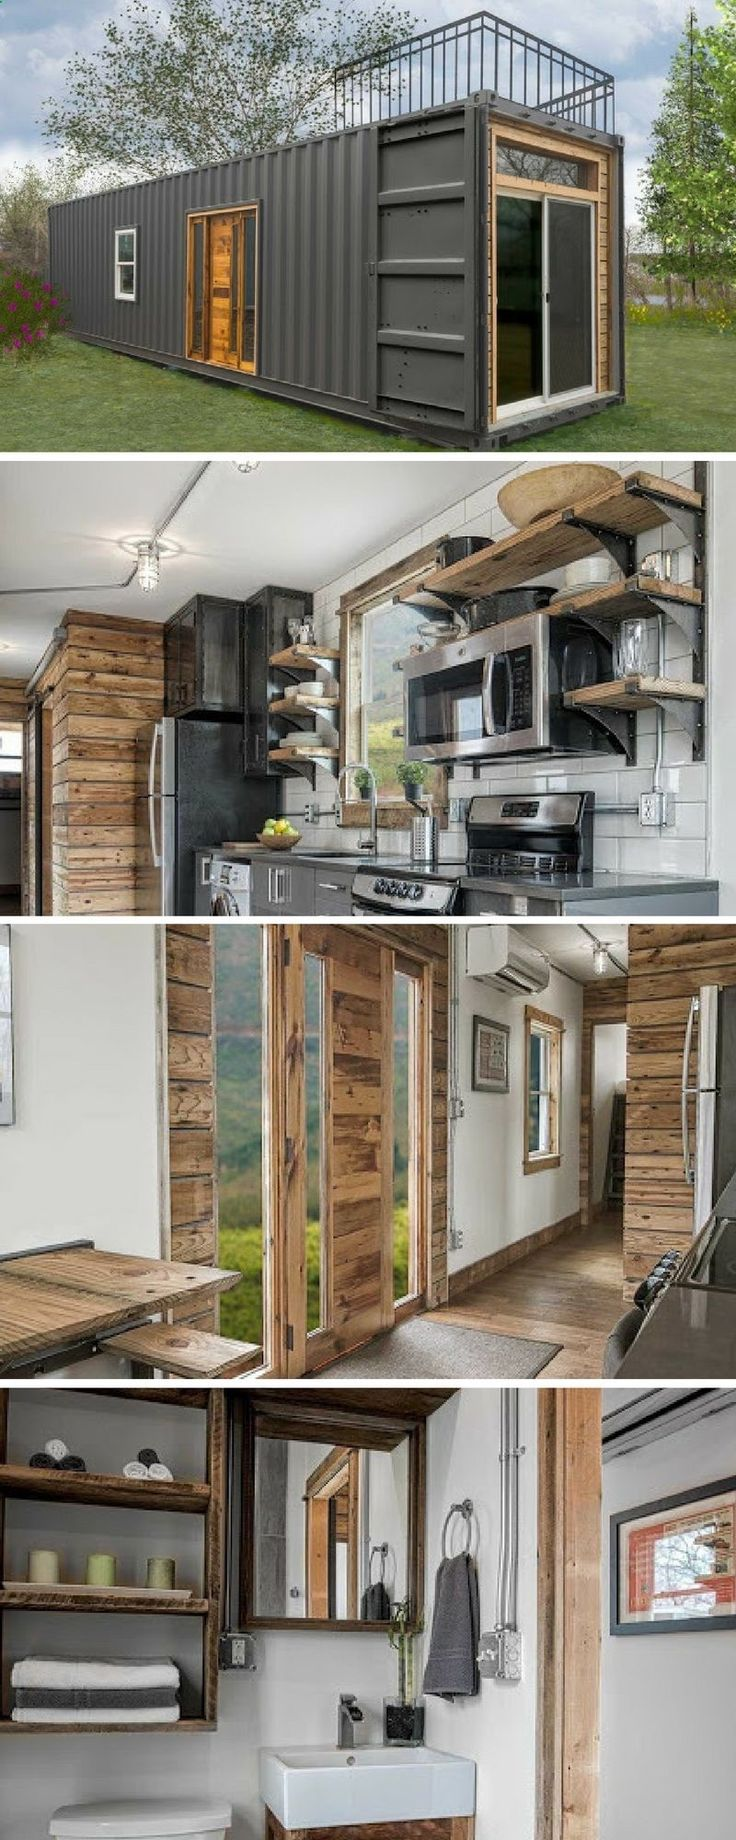 98 Best Tiny U0026 Small Houses Images On Pinterest | Tiny House Cabin,  Beautiful Homes And Little Cottages